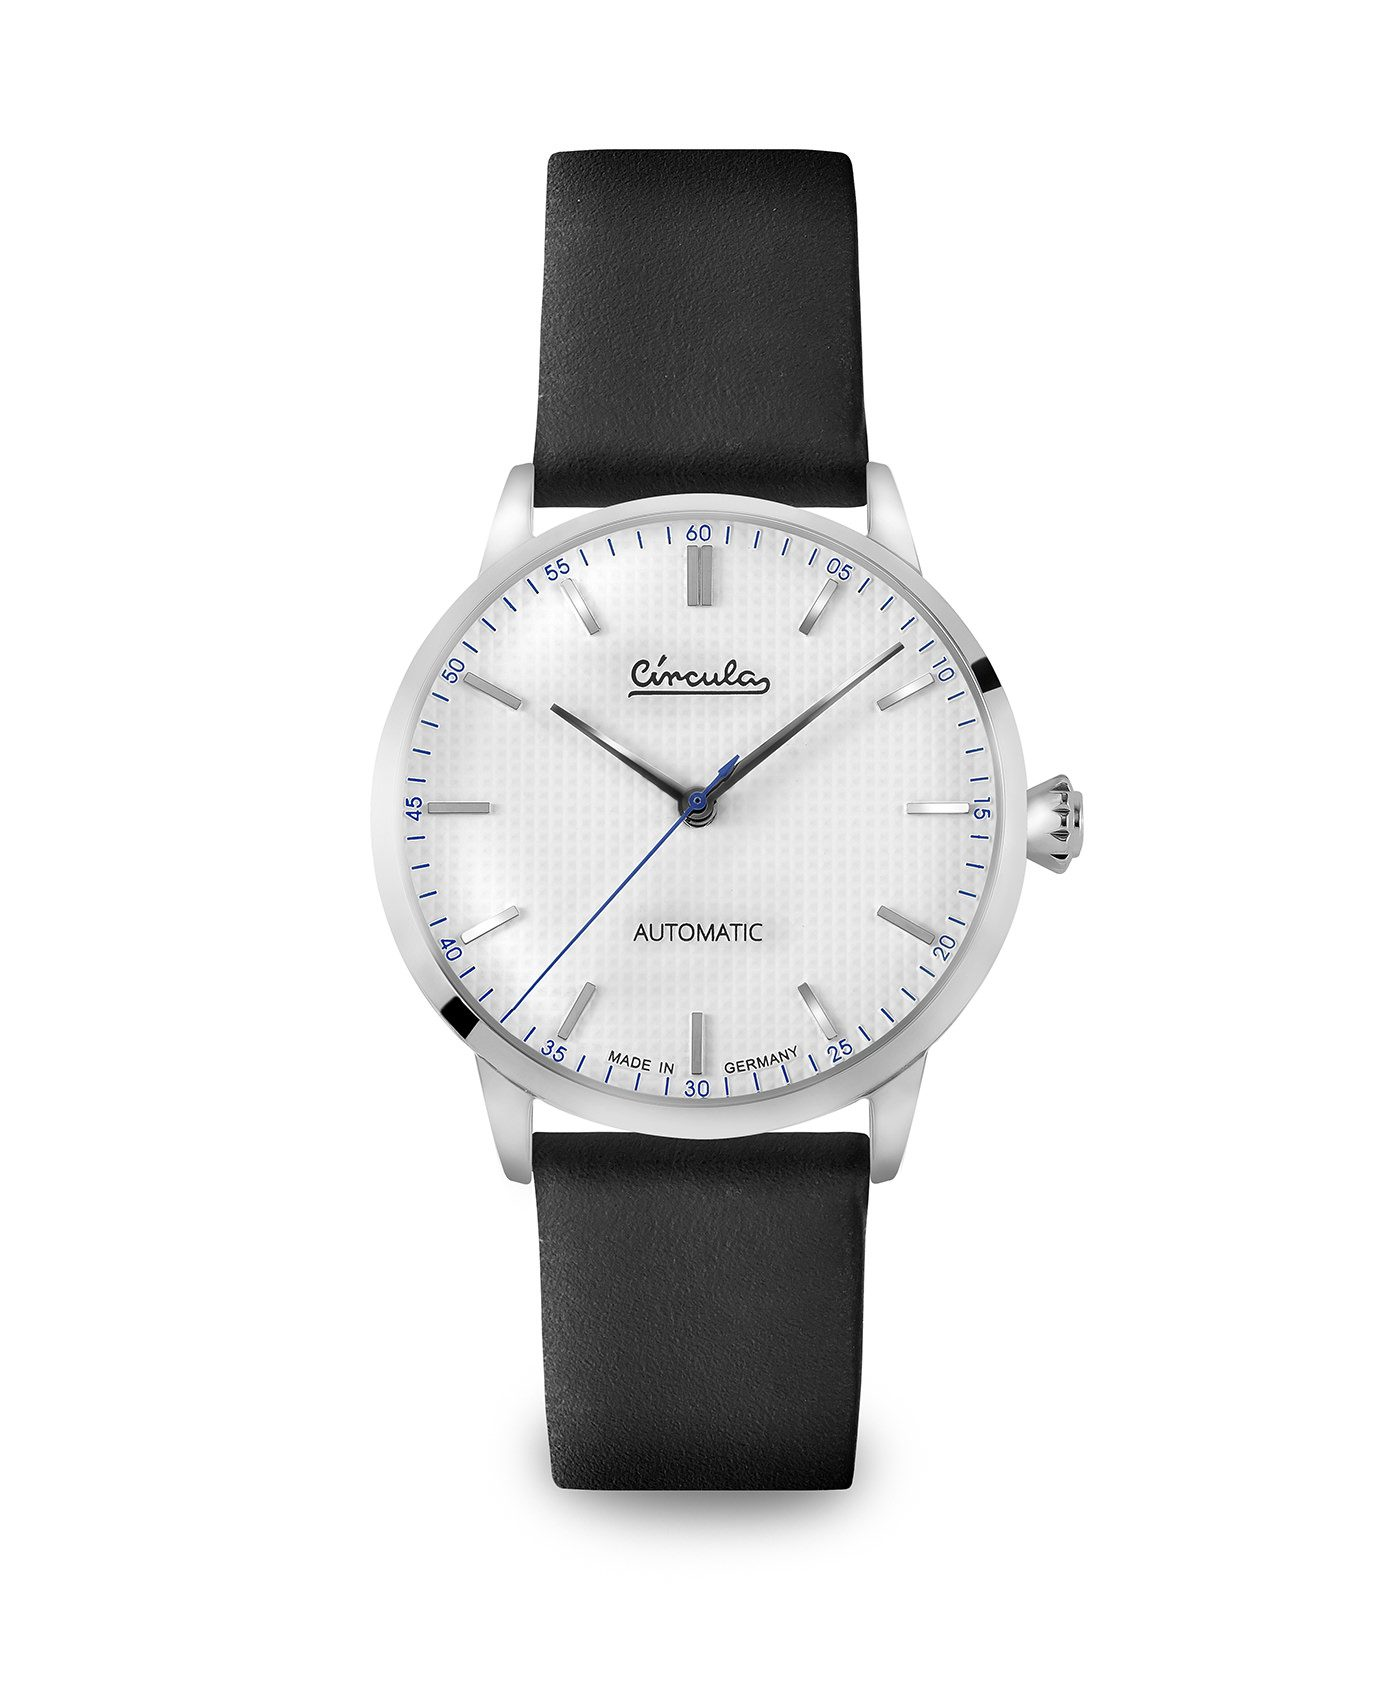 WB Circula - Classic Automatic White - Leather Black